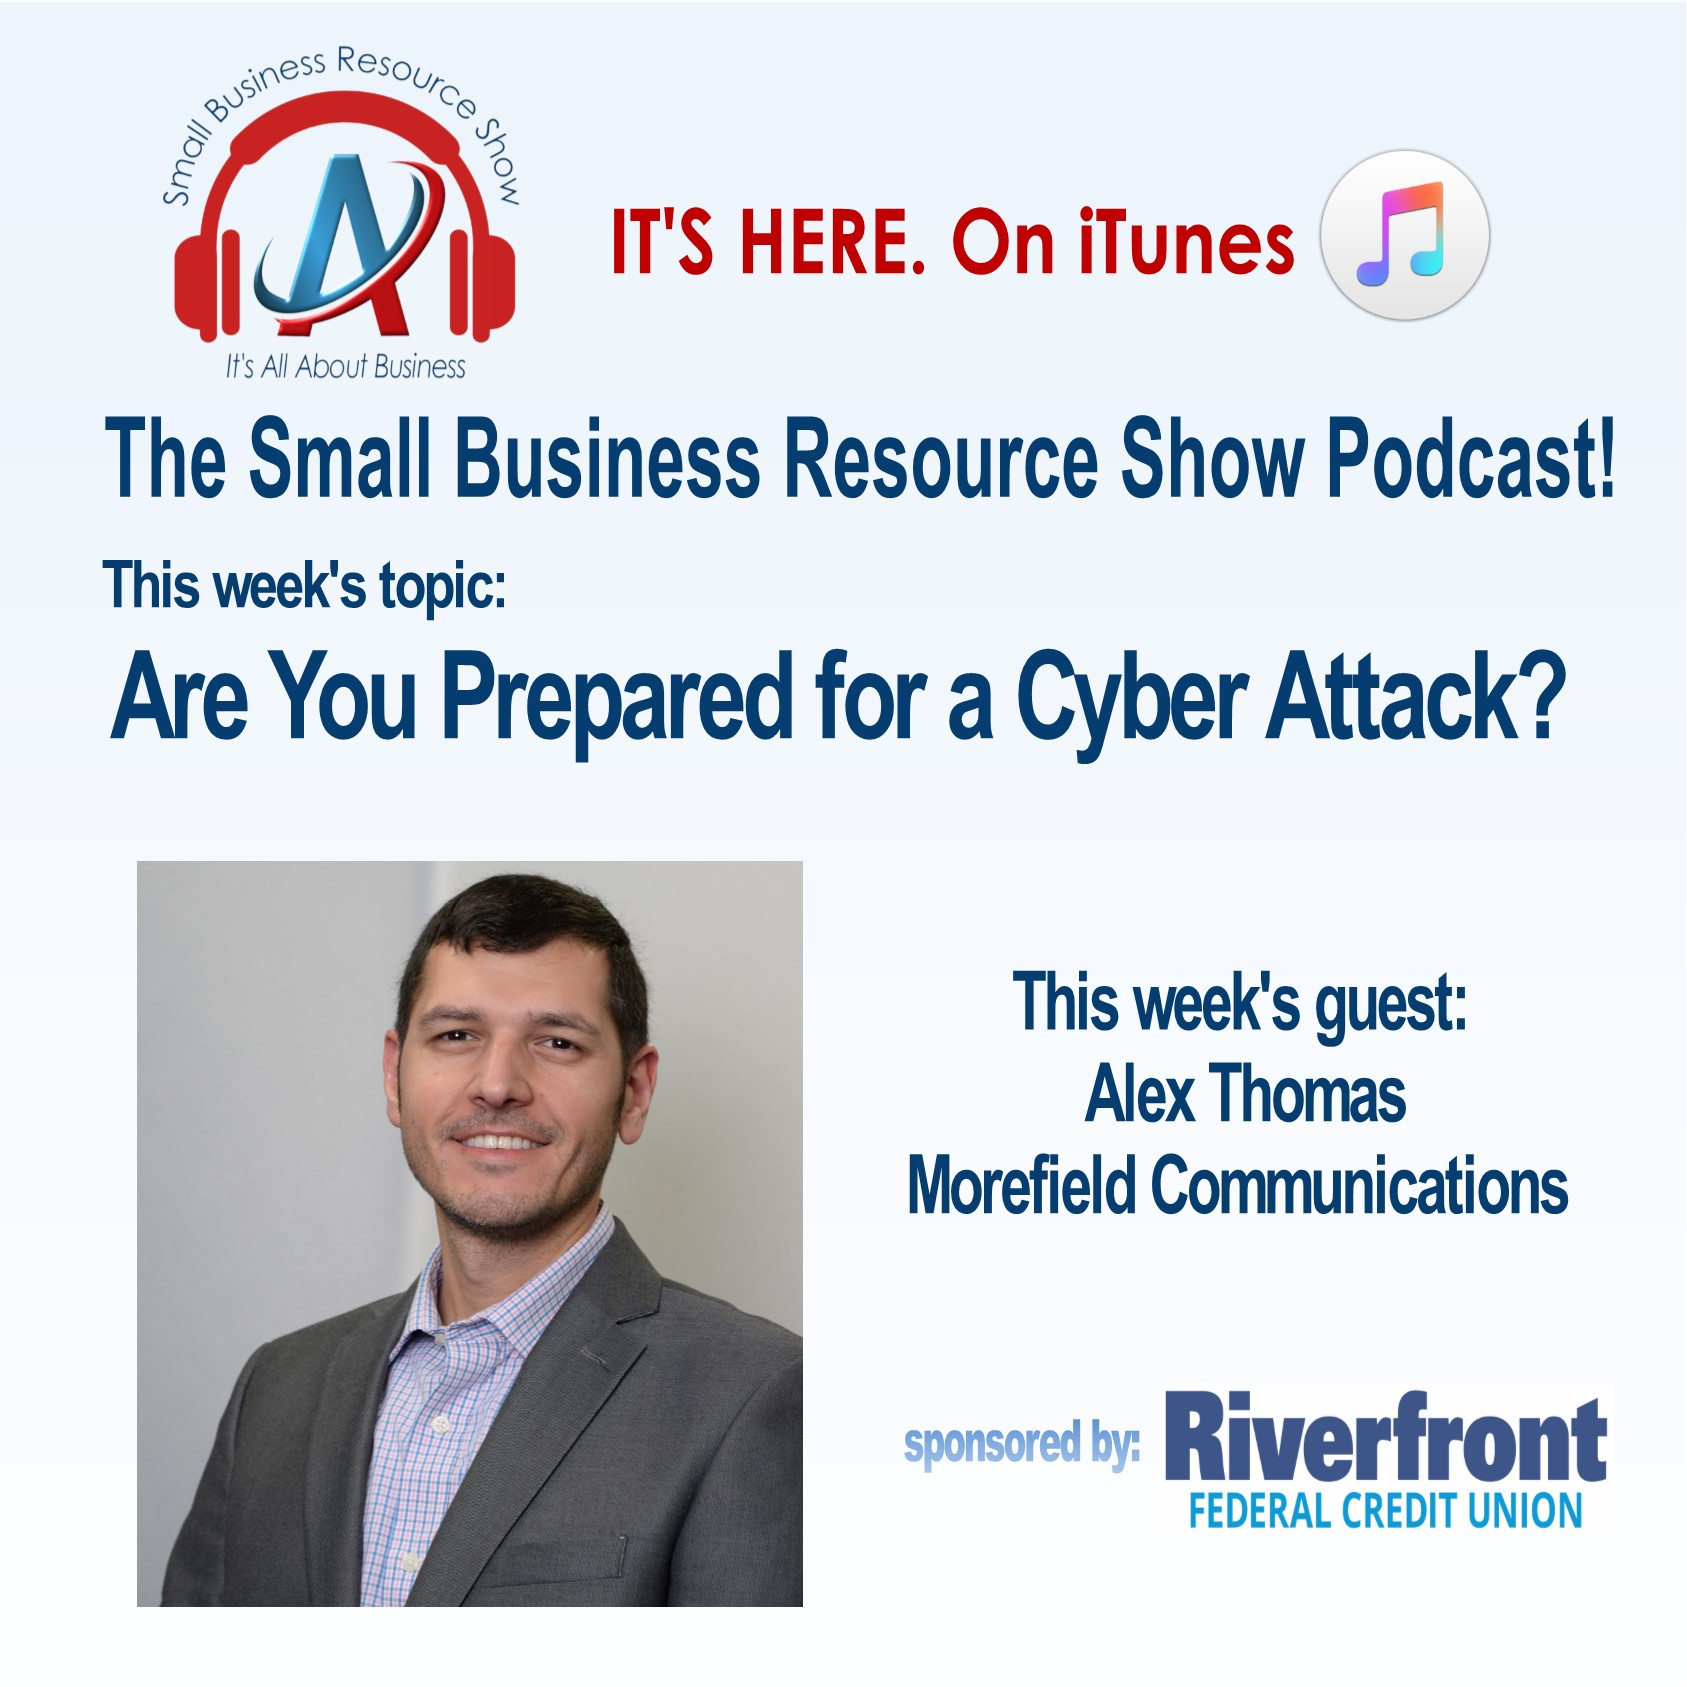 http://sbrashow.libsyn.com/are-you-prepared-for-a-cyber-attack-with-alex-thomas